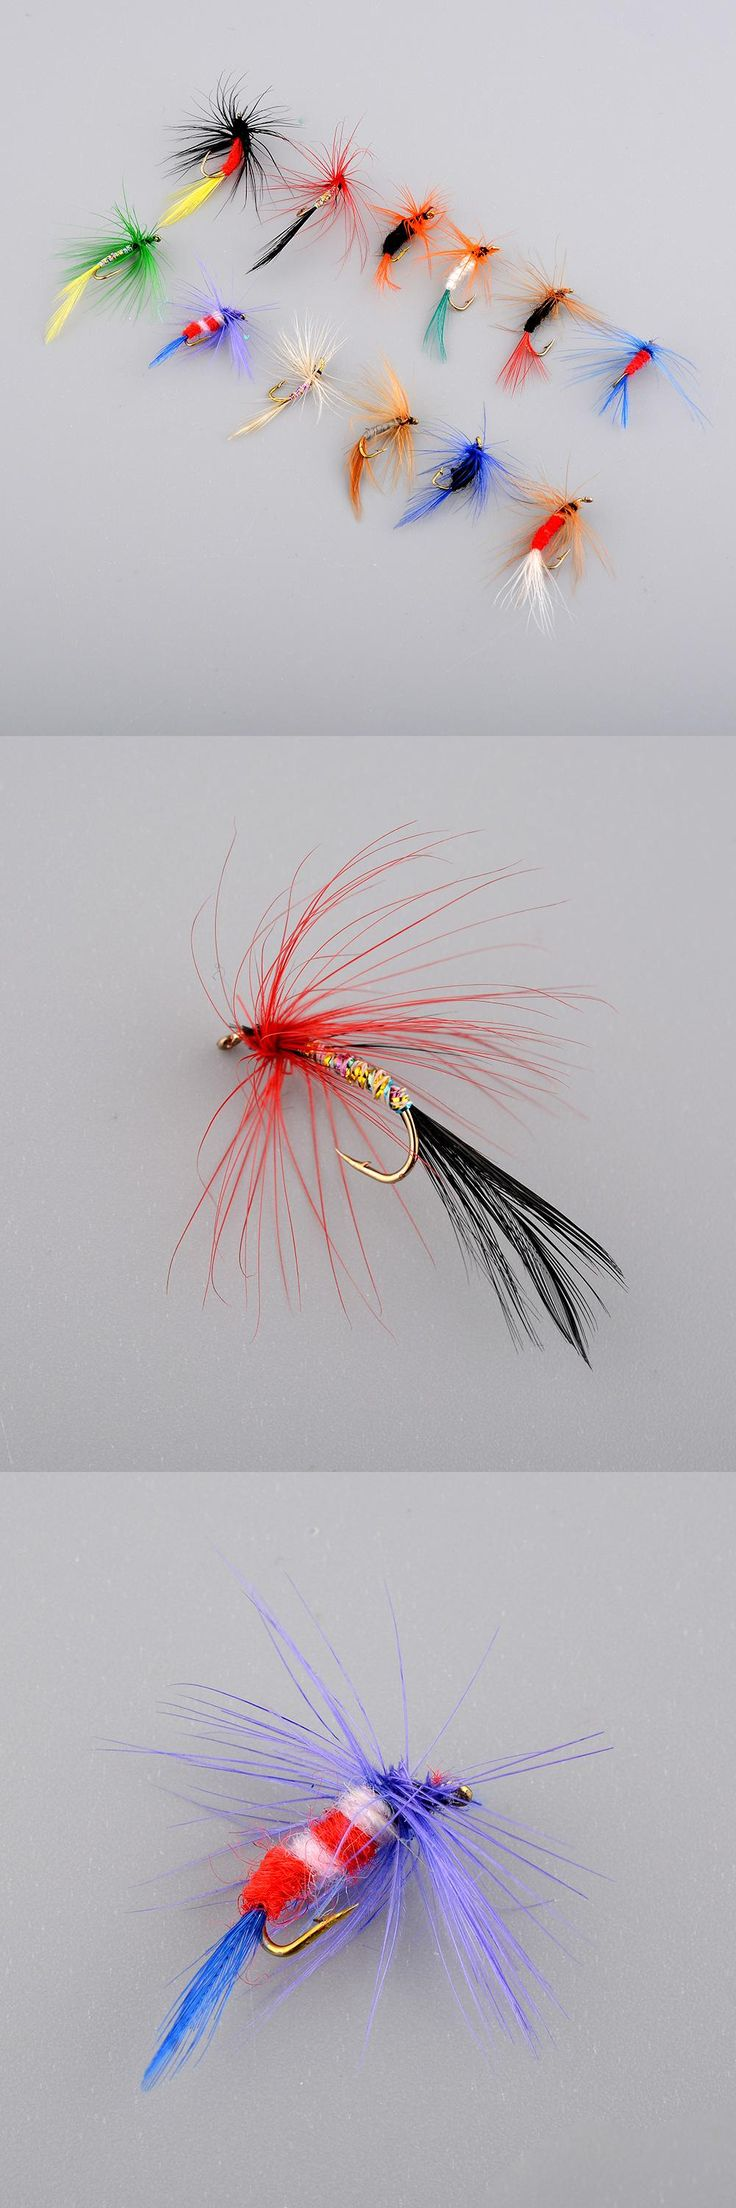 [Visit to Buy] 12Pcs Lures Fly Fishing Hooks Butterfly Insects Style Salmon Flies Trout Single Dry Fly Fishing Lure Fishing Tackle Promotion #Advertisement